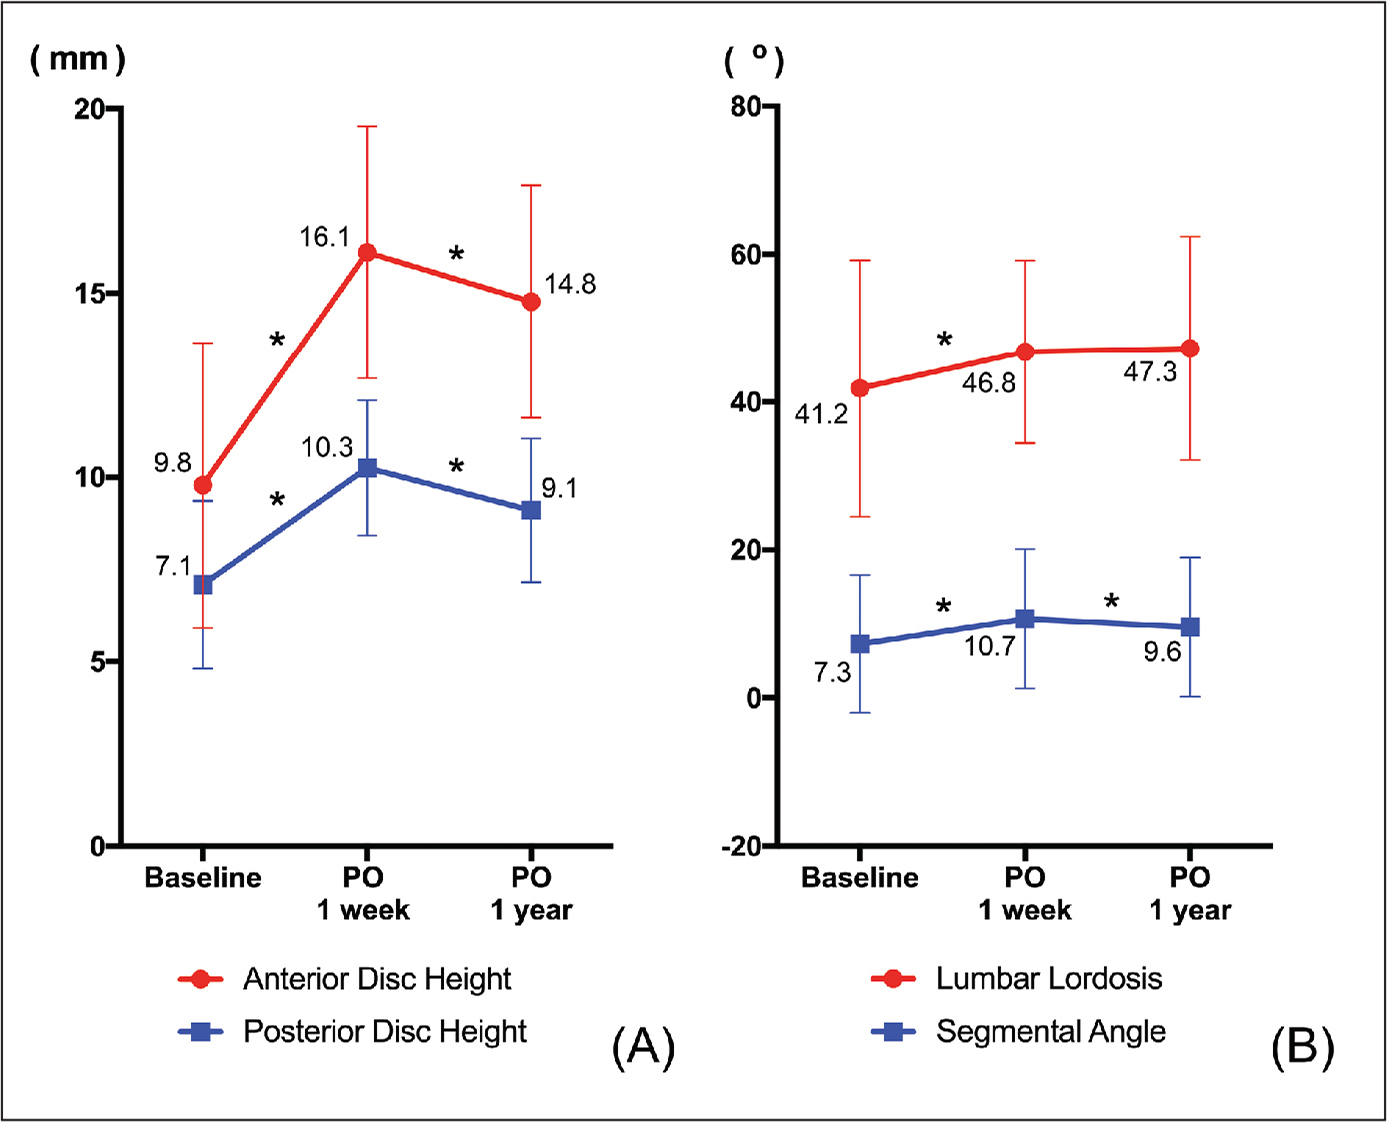 Changes in radiologic parameters from plain radiographs. Anterior and posterior disk height (A) and angles of the segment and the lumbar spine (B) all showed improvement immediately after oblique lateral interbody fusion. Numbers next to the symbols represent mean value of a disk height or an angle. Asterisks indicate the interval with significant improvement (P<.05 in paired t test). Abbreviation: PO, postoperative.